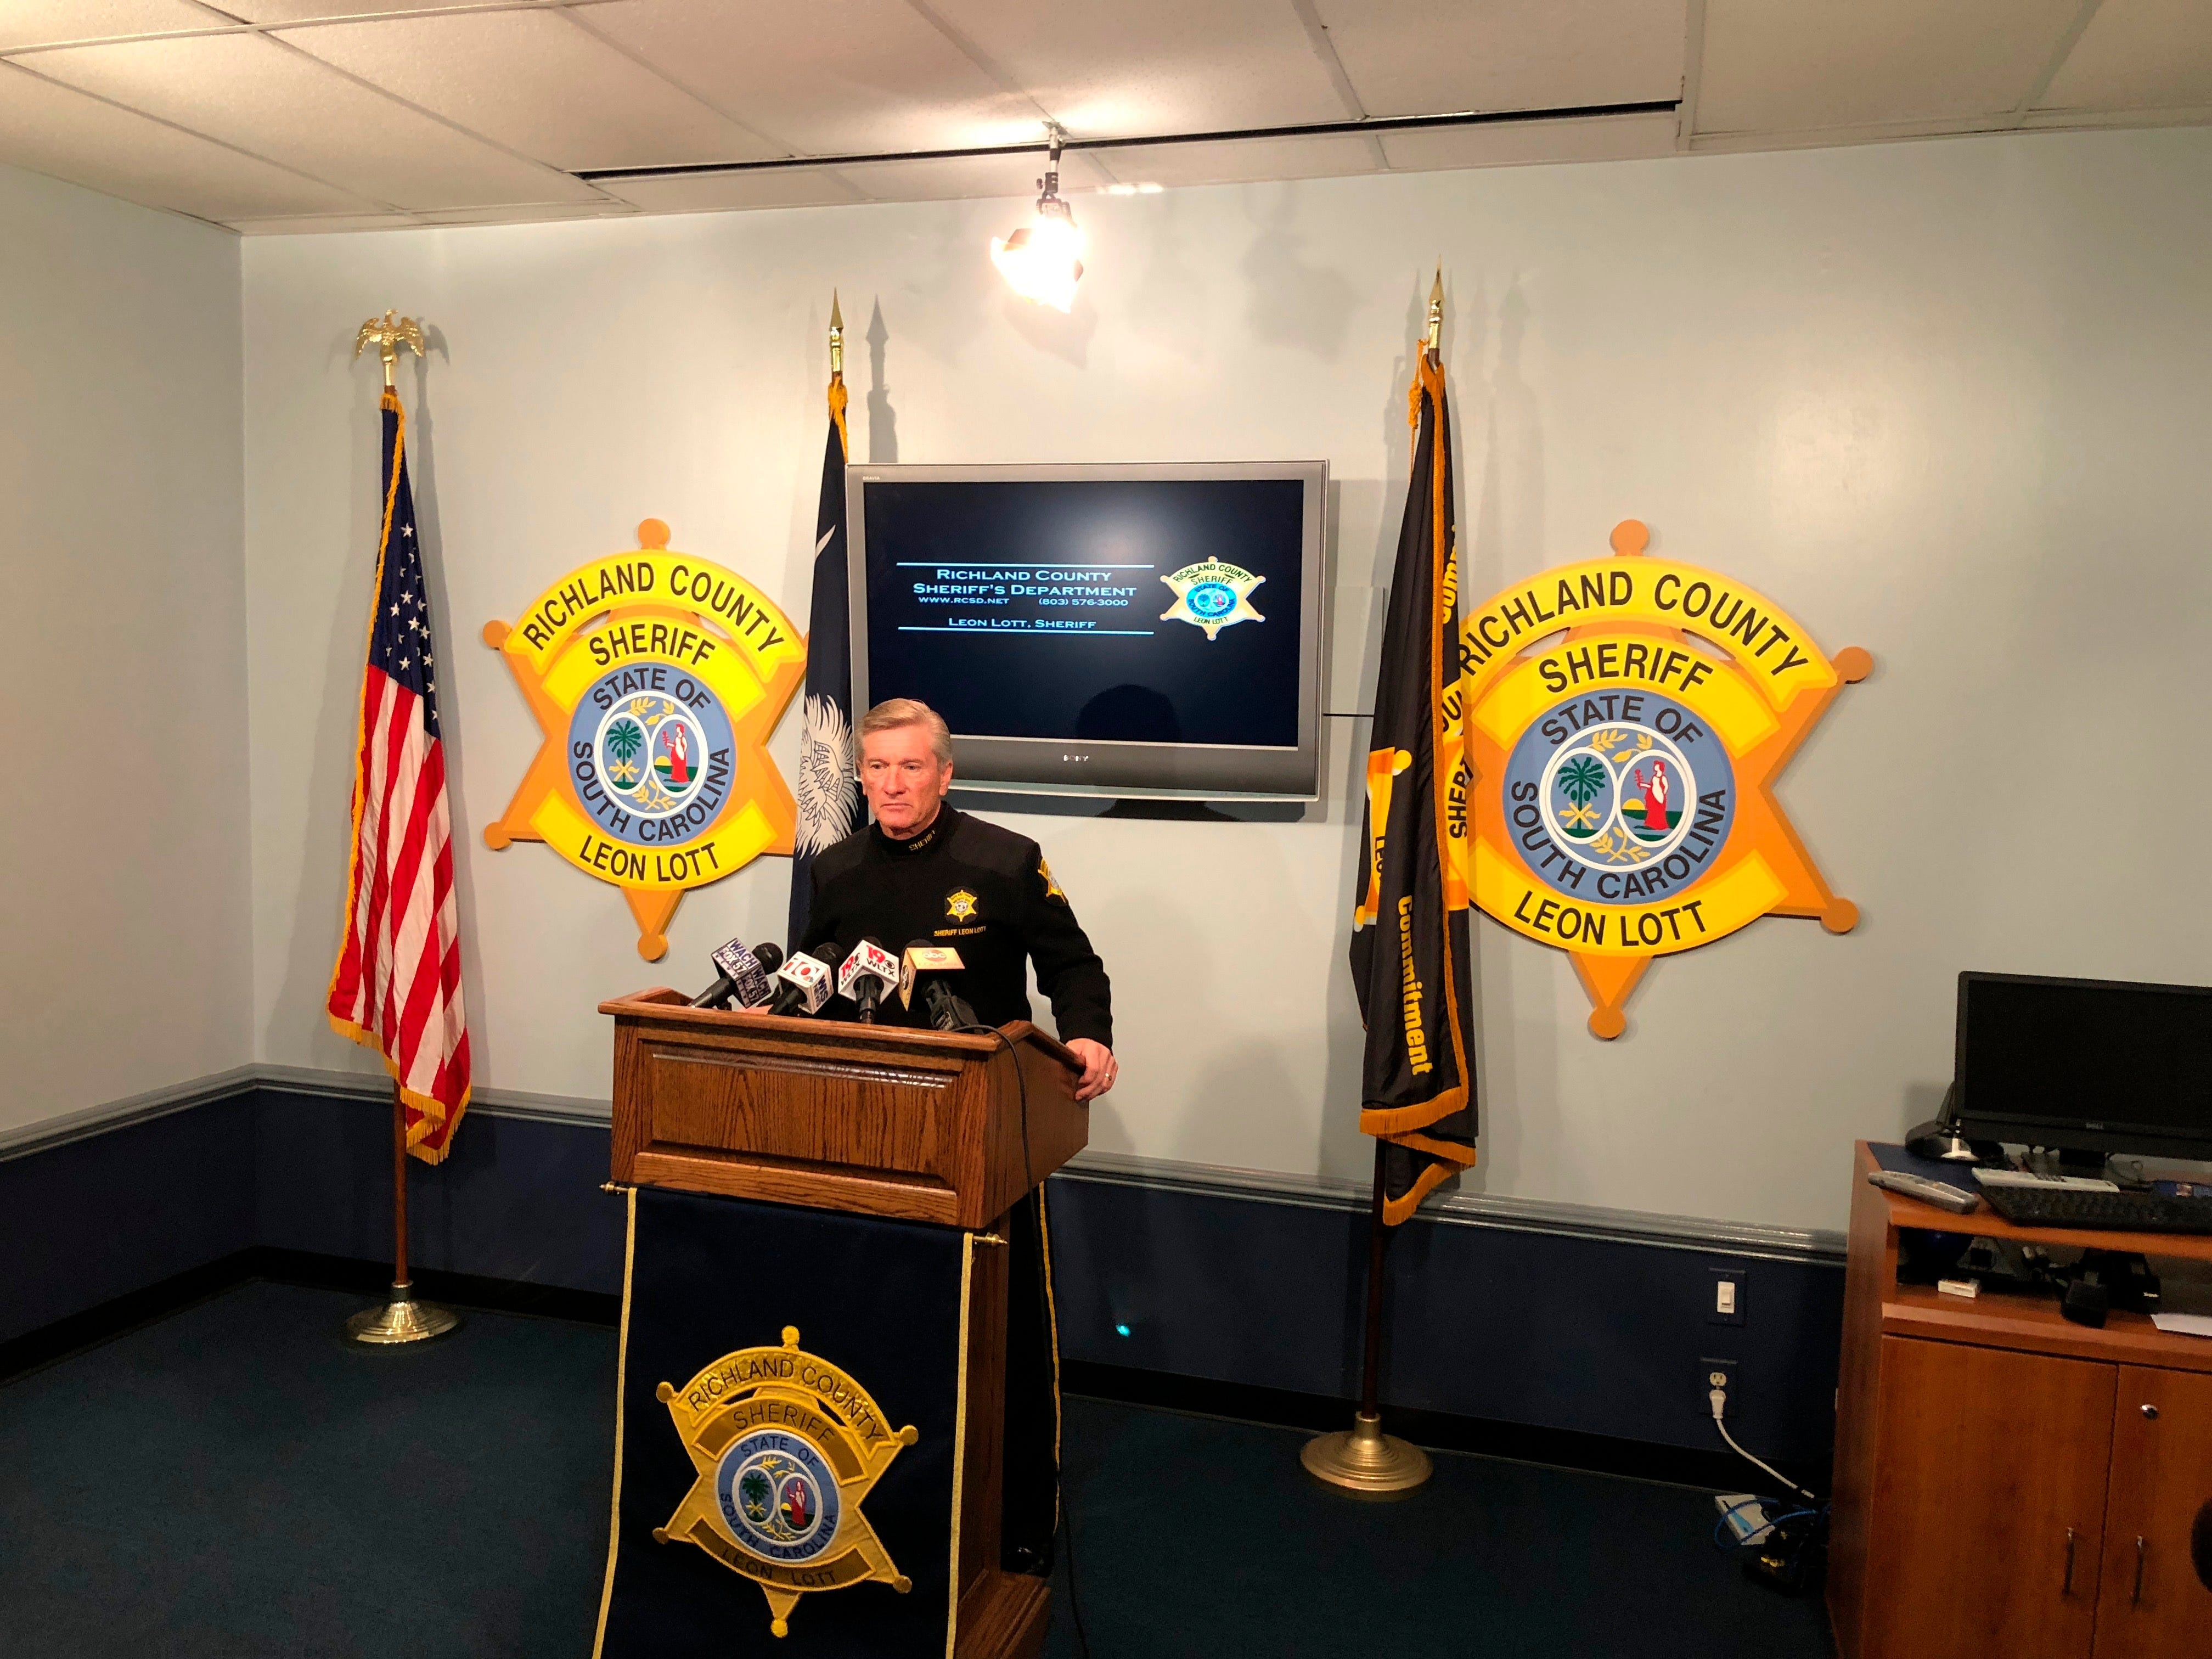 At a Nov. 21, 2018, news conference in Columbia, South Carolina, Richland County Sheriff Leon Lott talks to reporters about a 19-year-old woman killed in South Carolina in 1978. Her death who is likely linked to Samuel Little, a prisoner who told investigators he may have killed as many as 90 people across the United States.